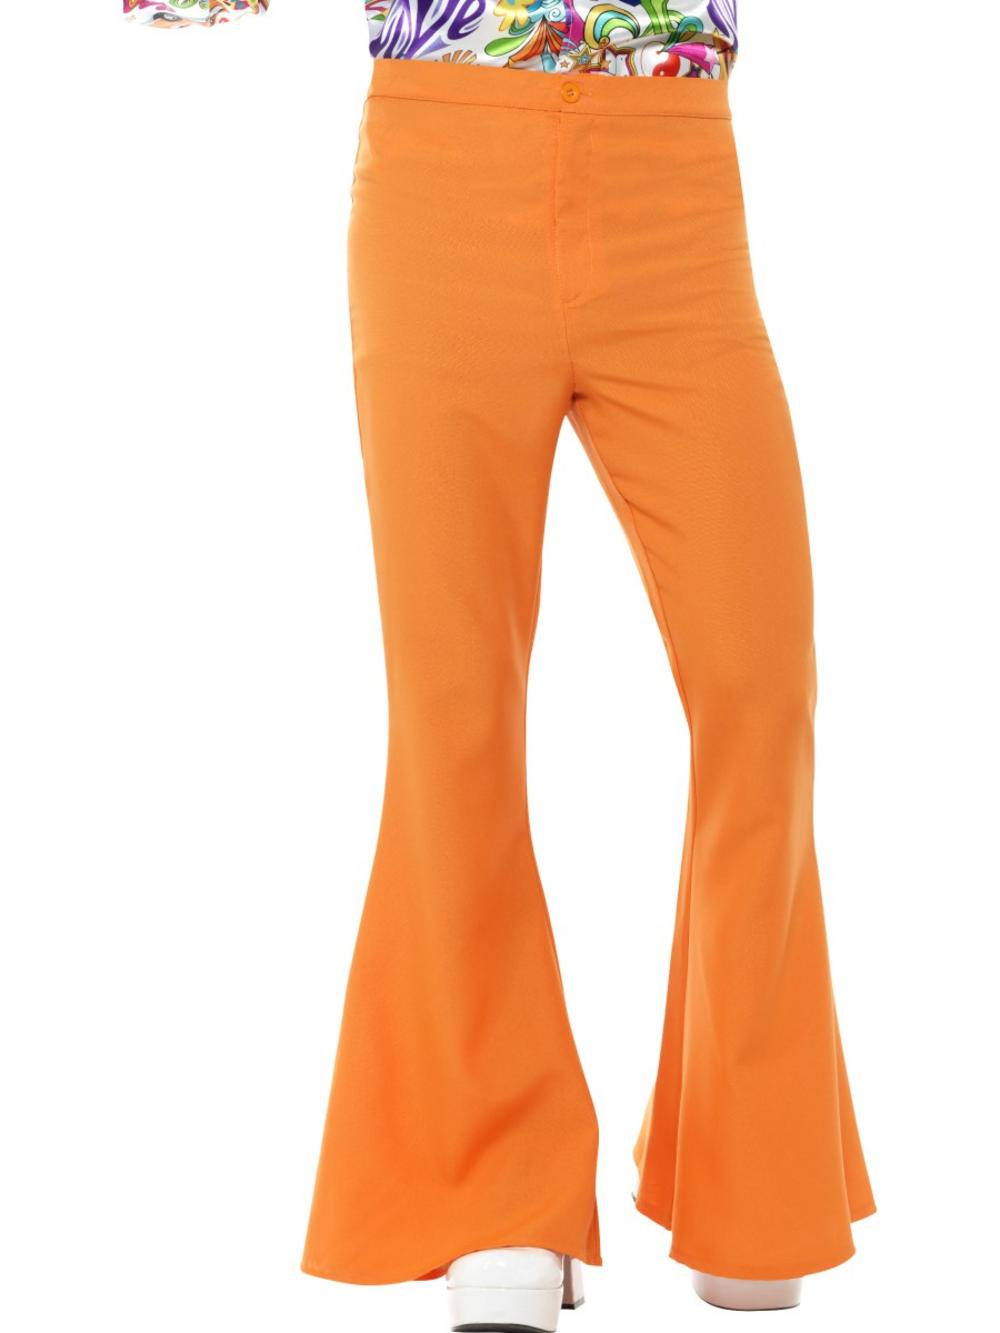 Orange Flared Trousers Mens